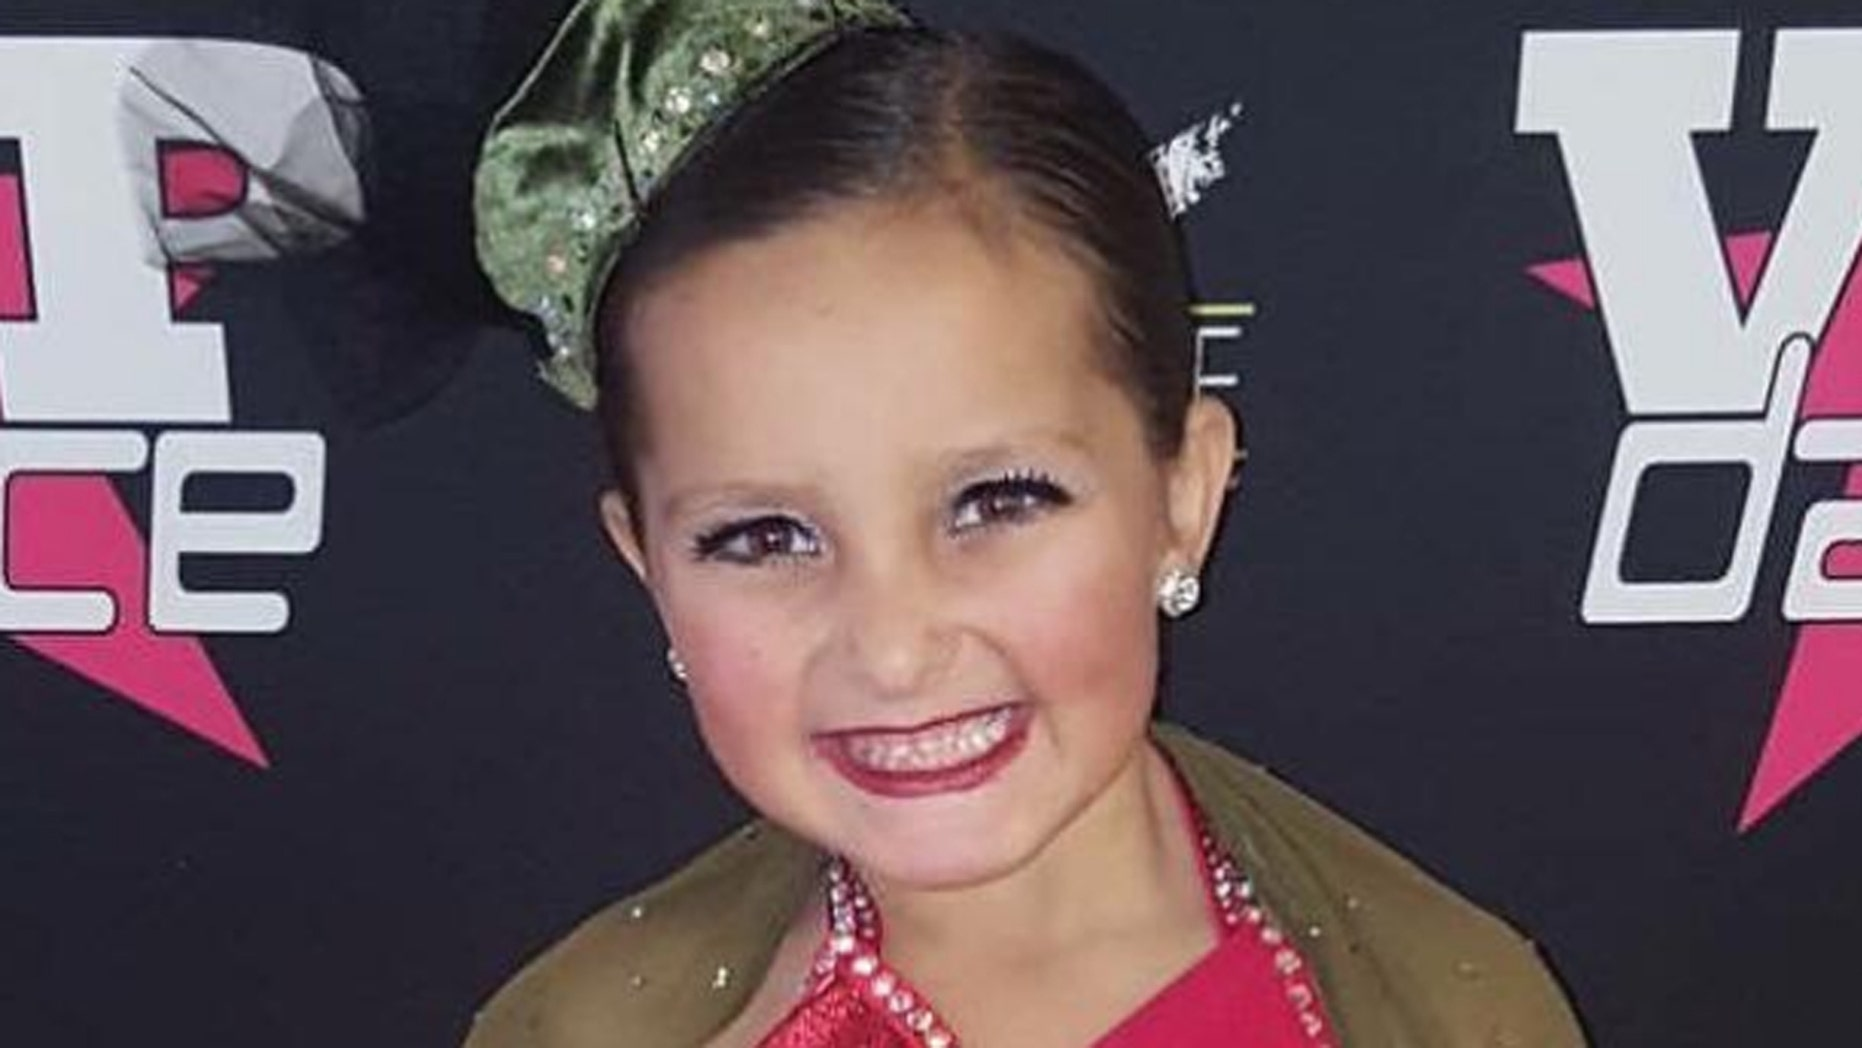 6-Year-Old Dancer Loses Her Leg After Having Strep Throat